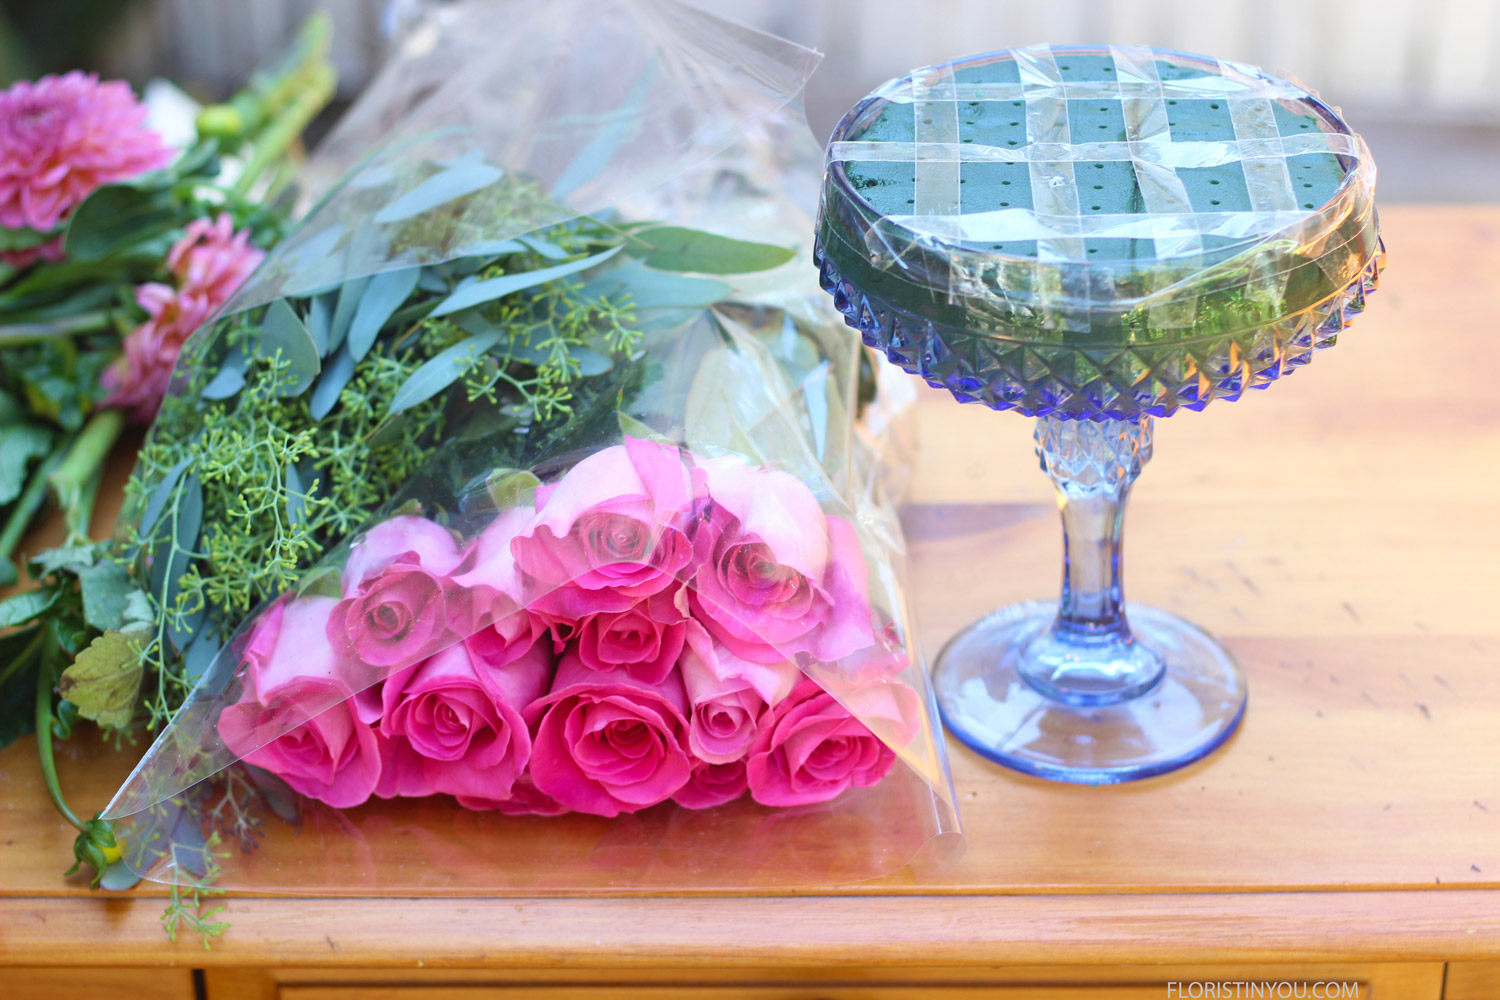 Fit 2 half circles foam into vase.  Wipe off rim.  Make tape grid with water proof tape.  Then tape all the way around rim.